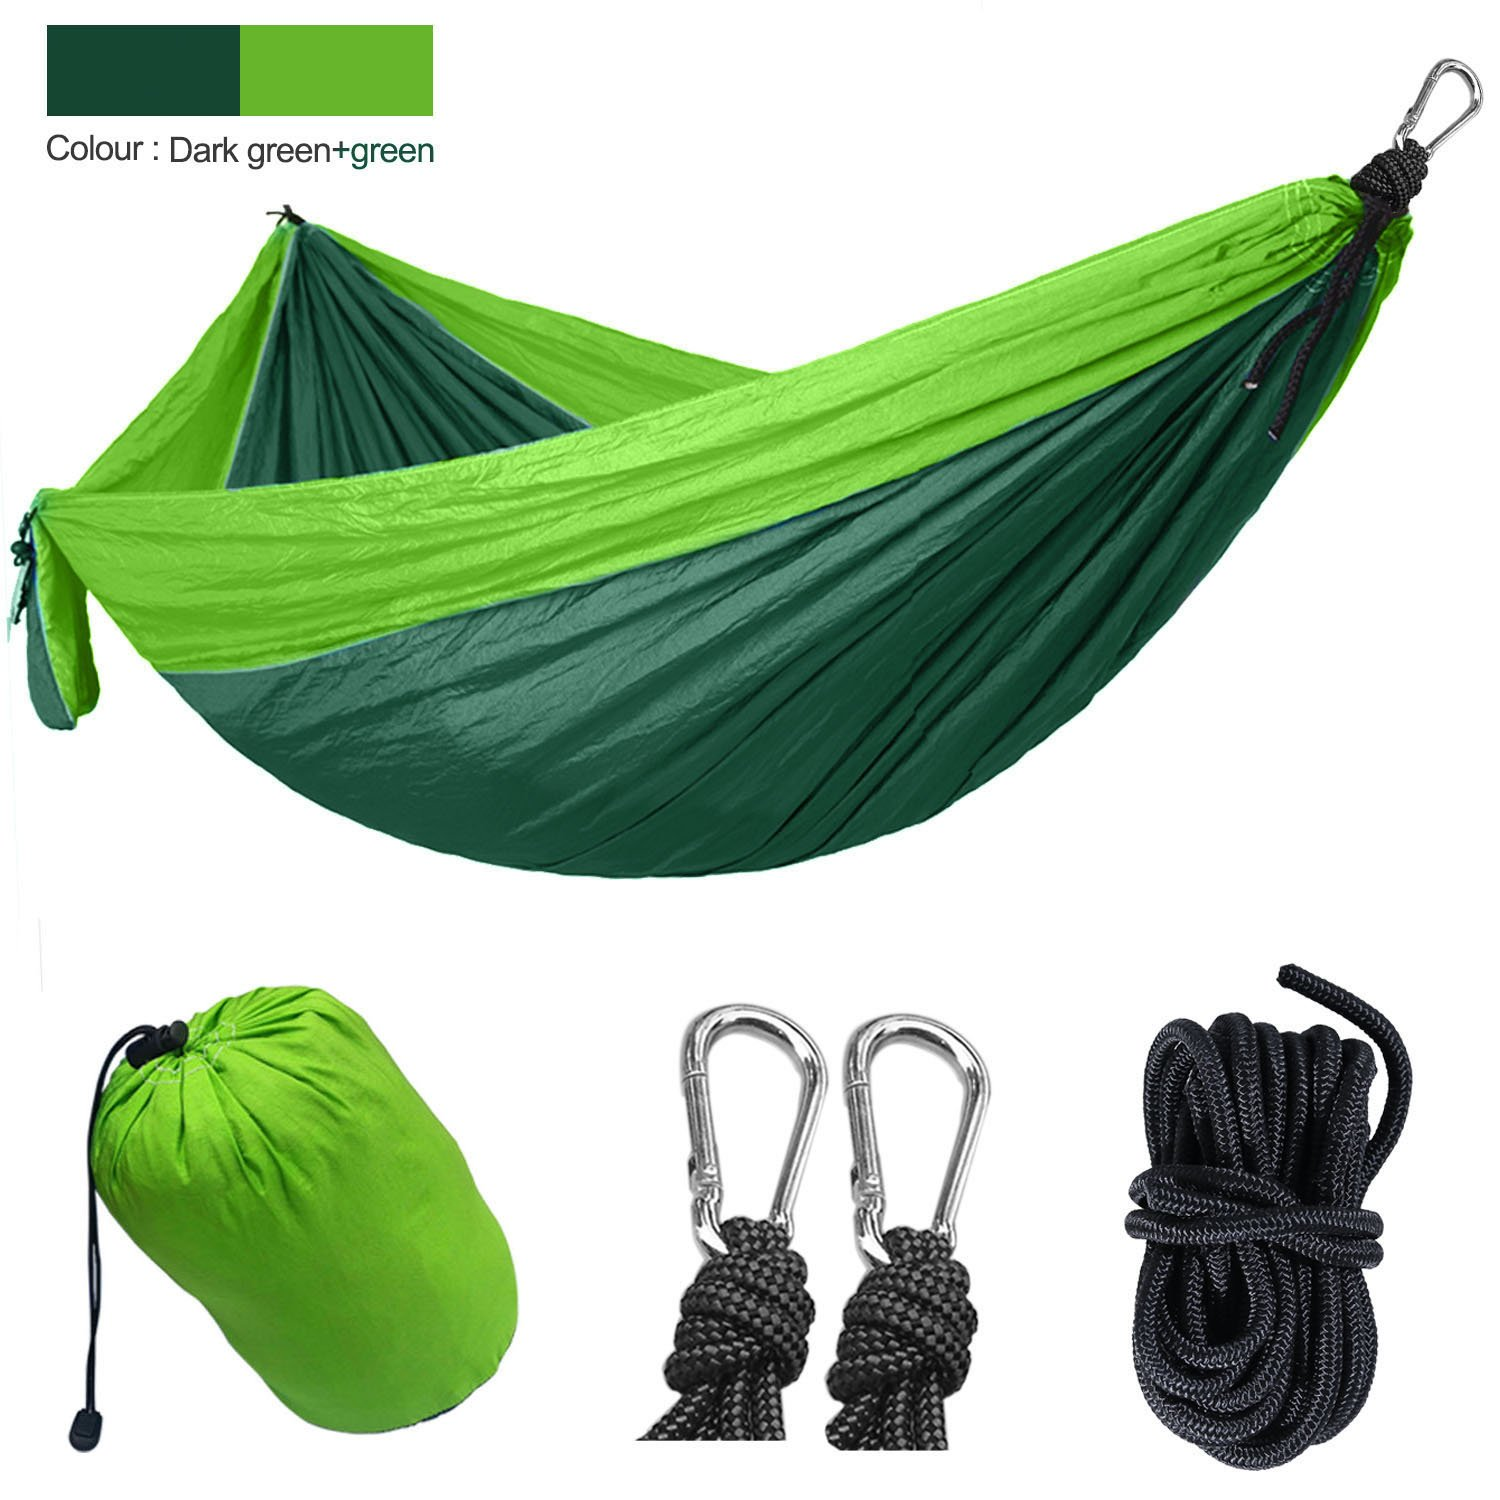 Yomodo Backpacking Hammock-Double Parachute Hammock for Backyard, Camping, Travel,Porch, Outdoor and Indoor Use-Lightweight Nylon Portable Hammock